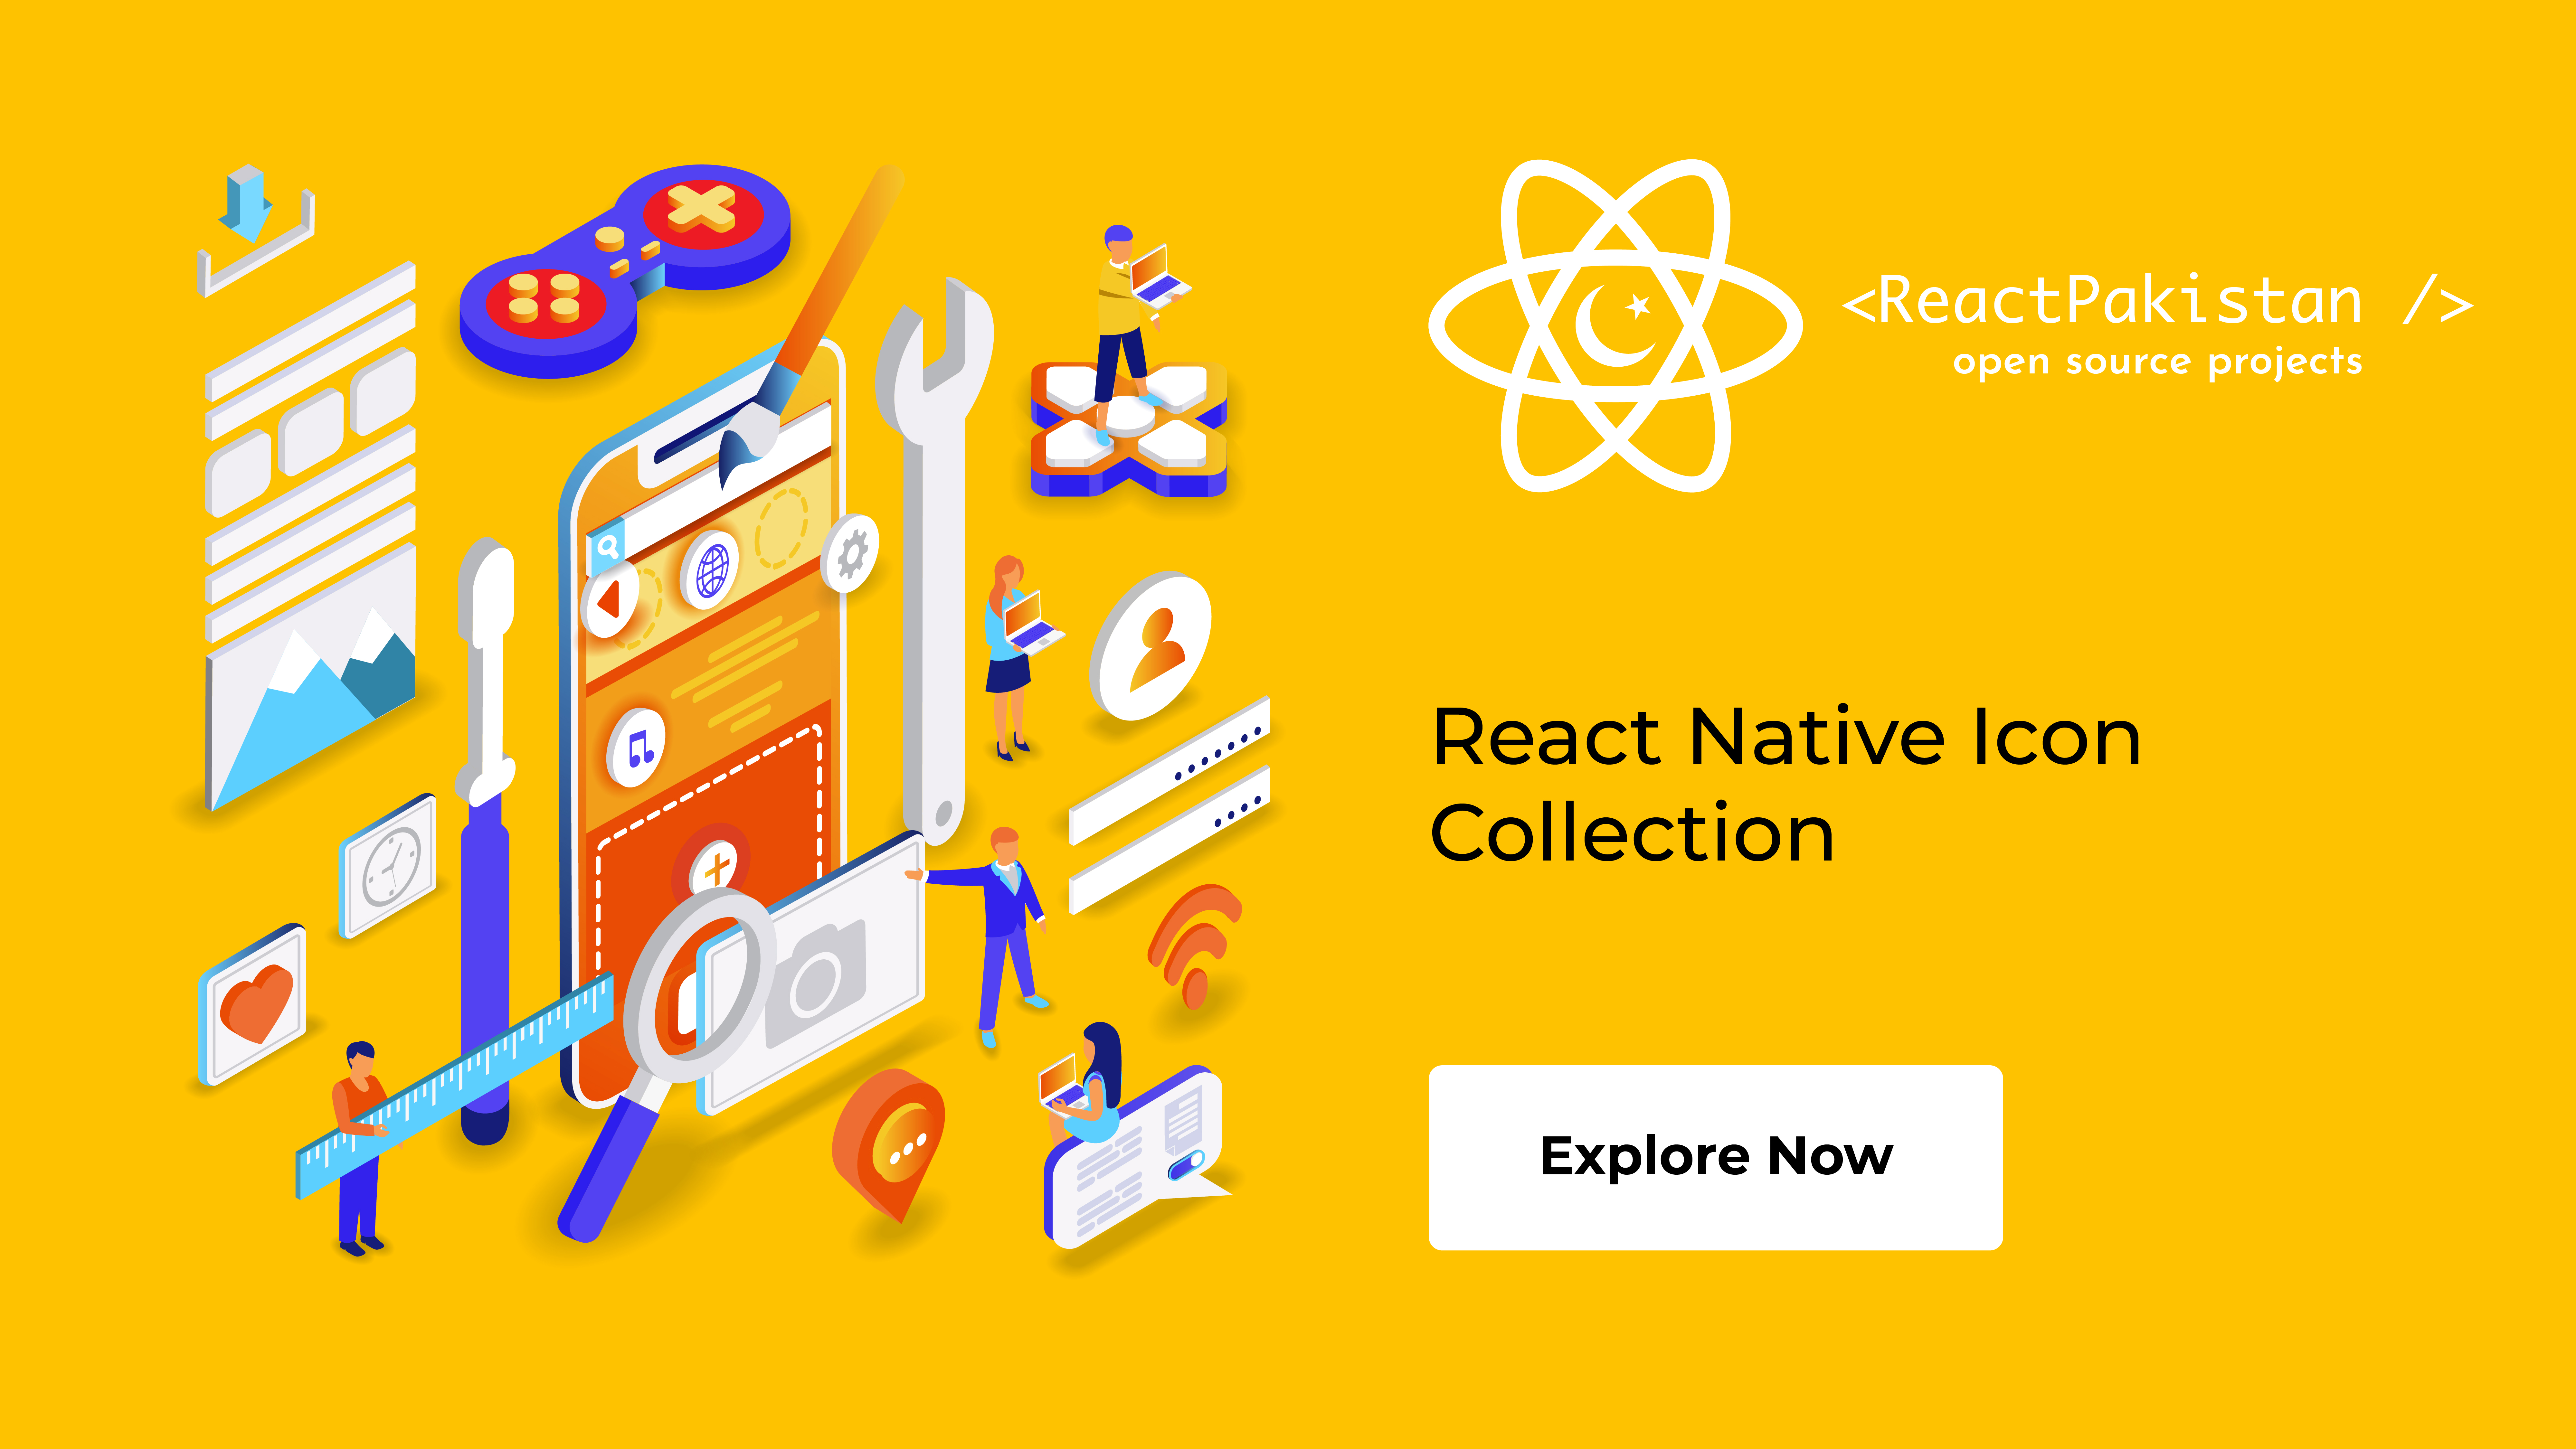 React Pakistan - React Native Icon Collection